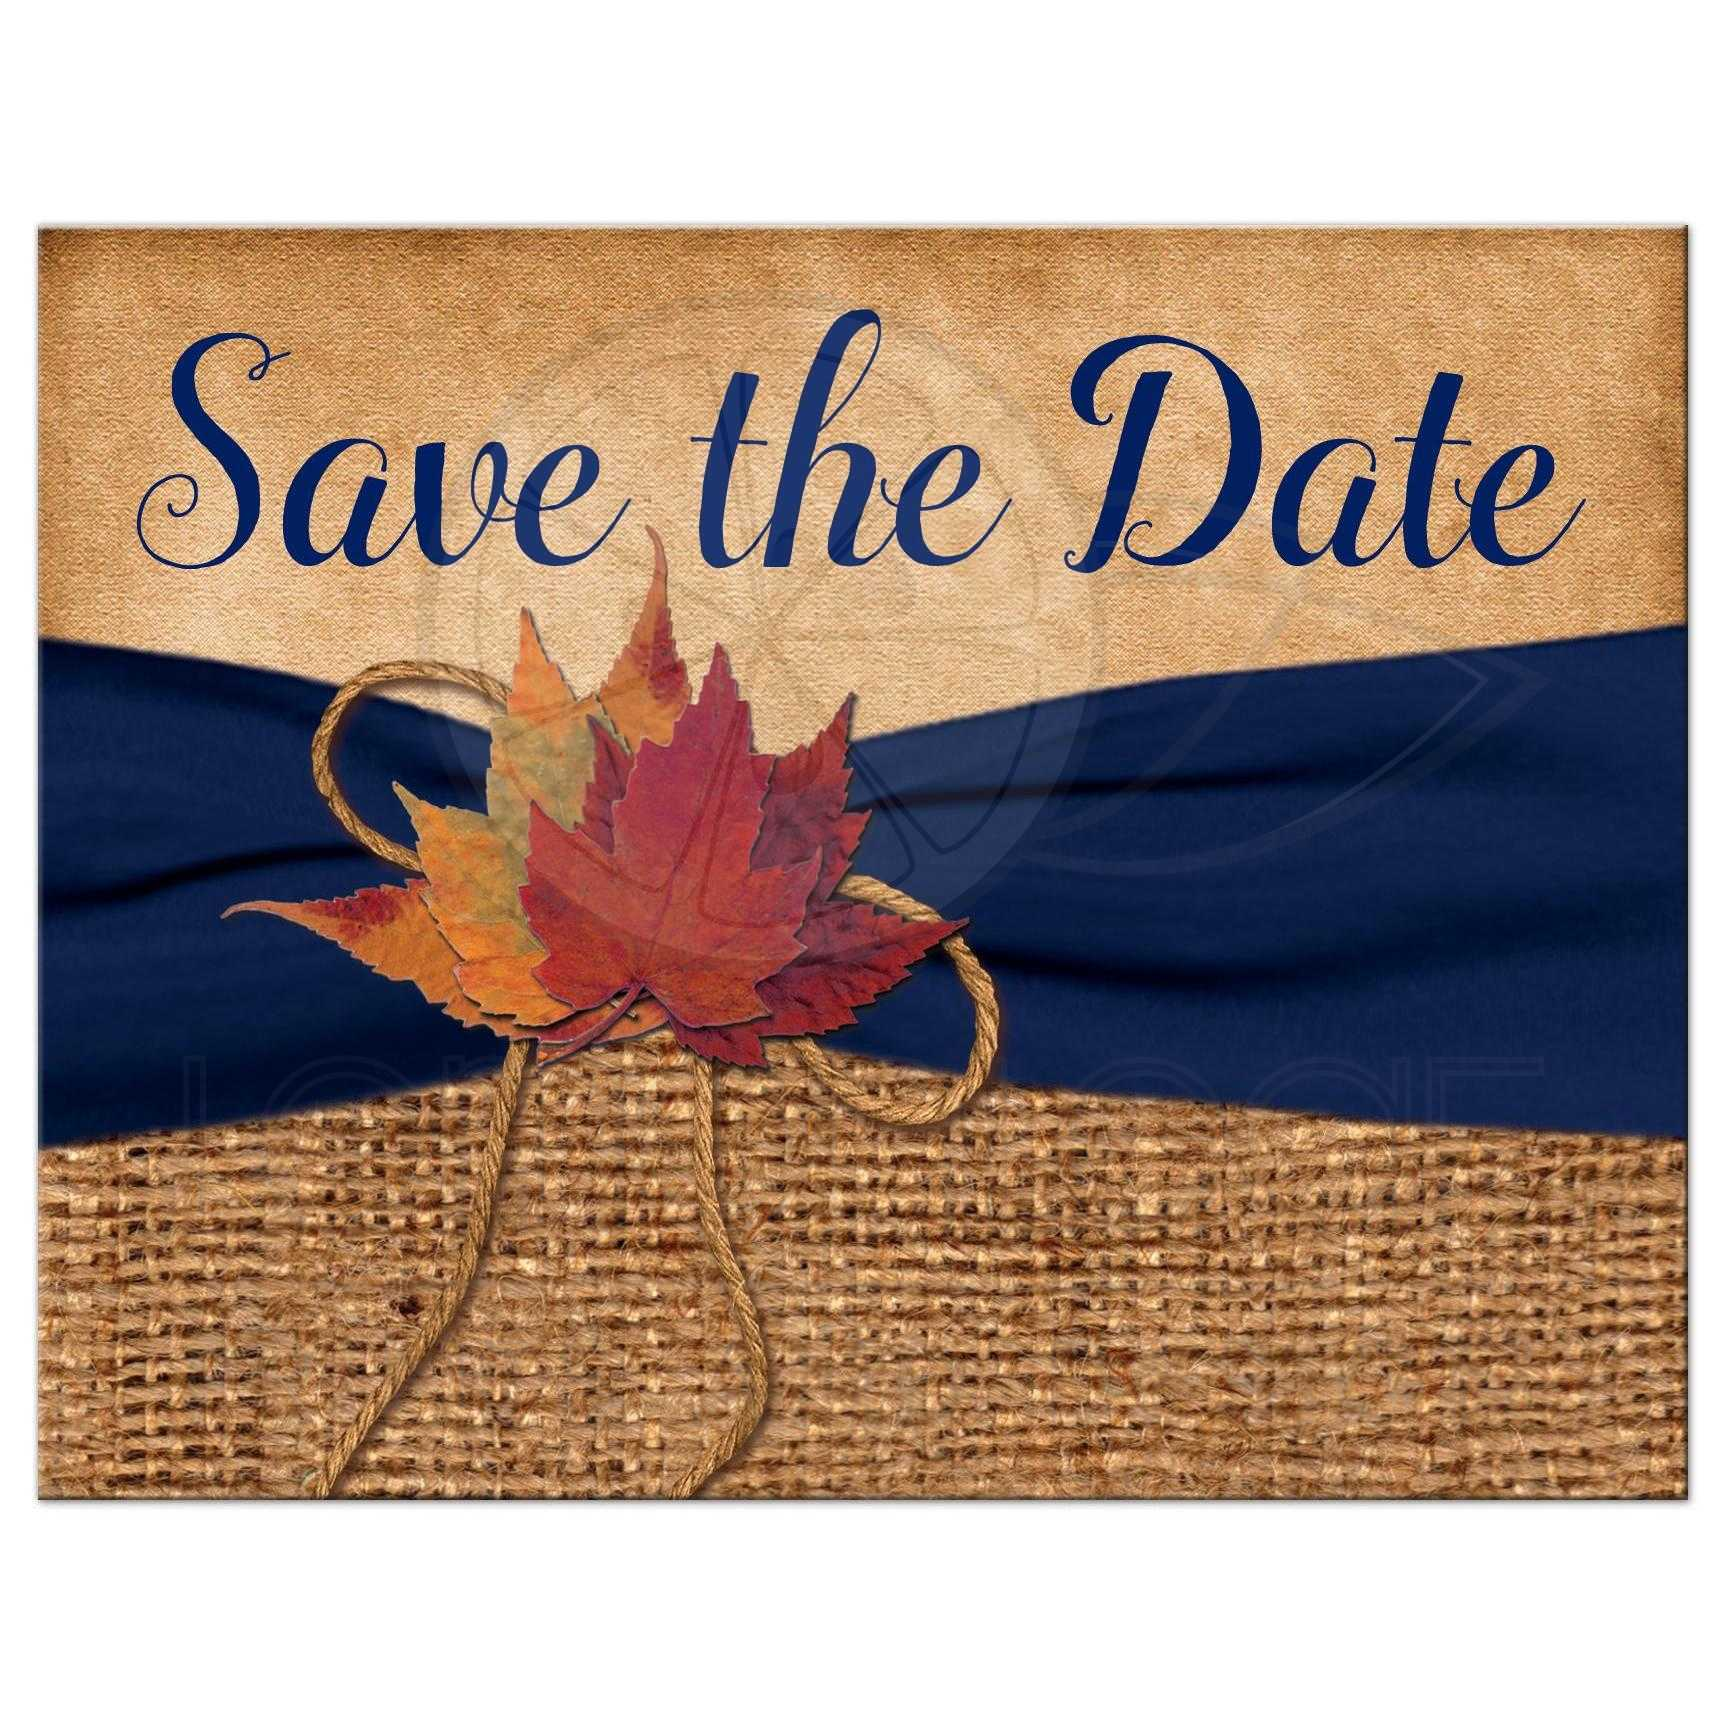 Rustic Brown Burlap Photo Template Wedding Save The Date Postcard With A  Navy Blue Colored ...